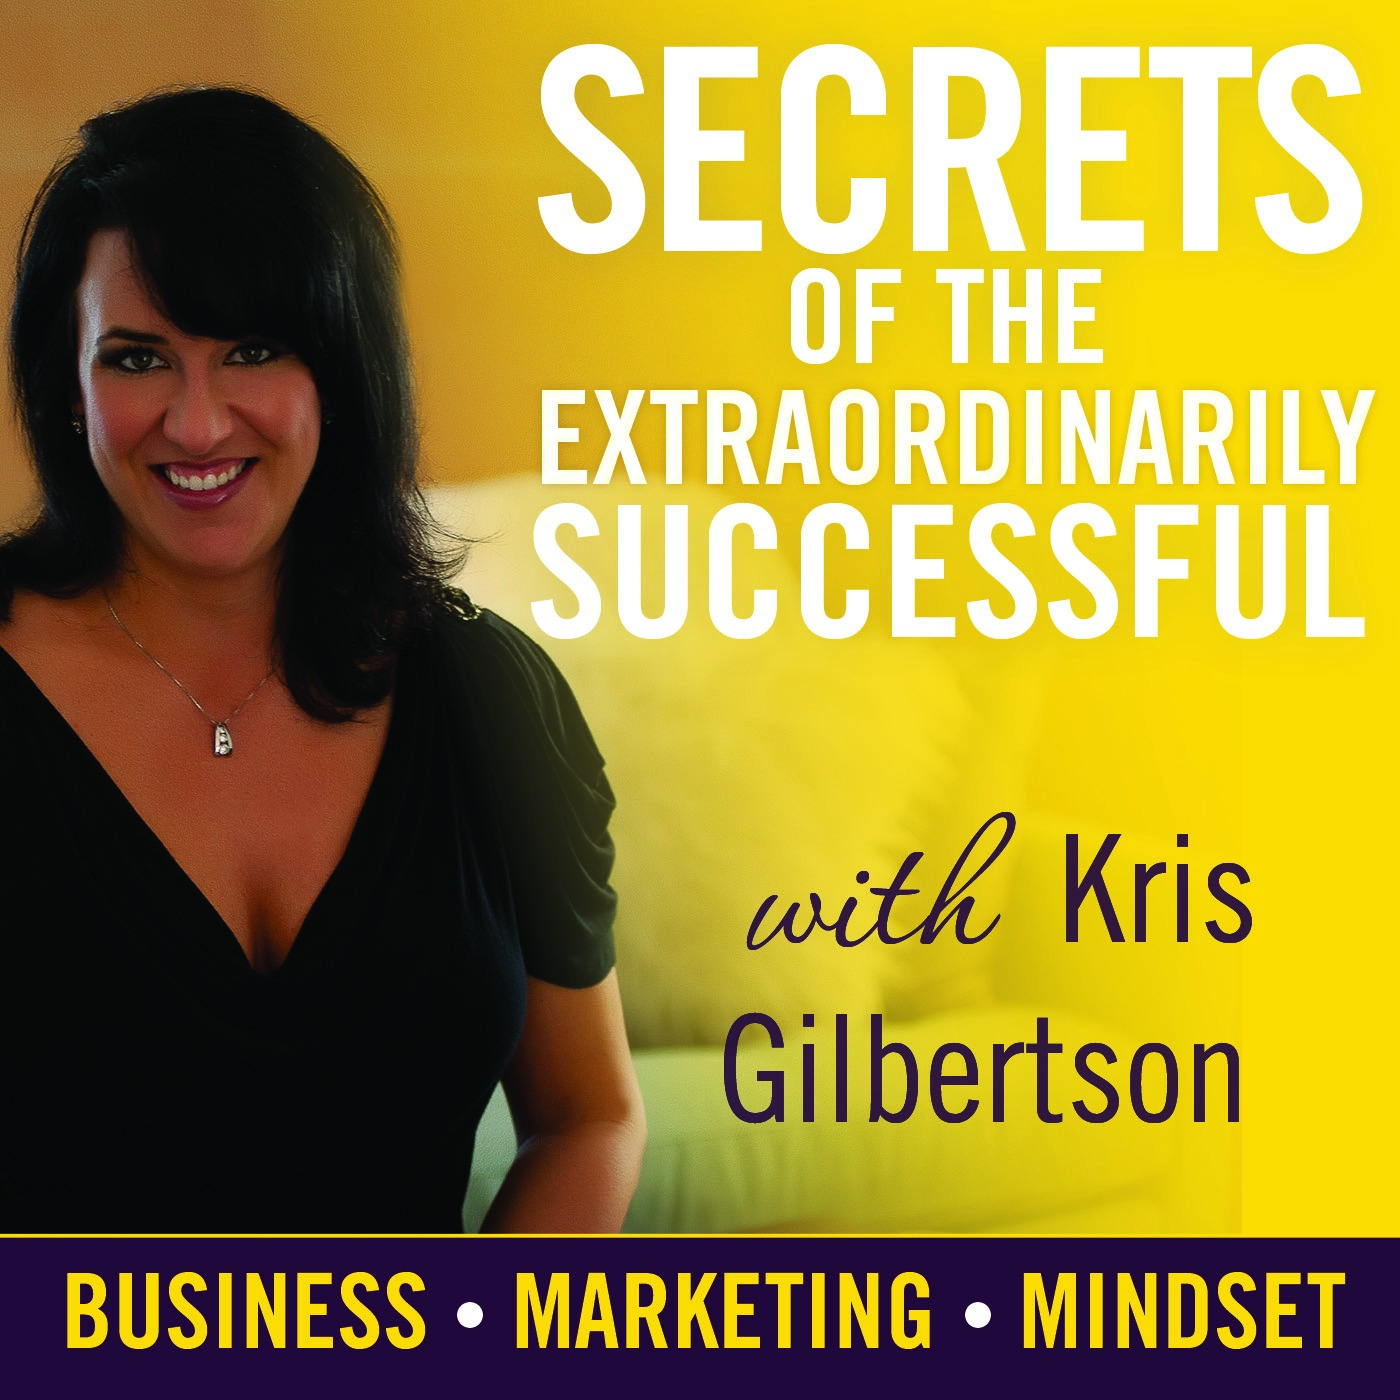 Kris Gilbertson l Millionaire & Expert Interviews / Business l Marketing l Mindset l Inspirational Podcast